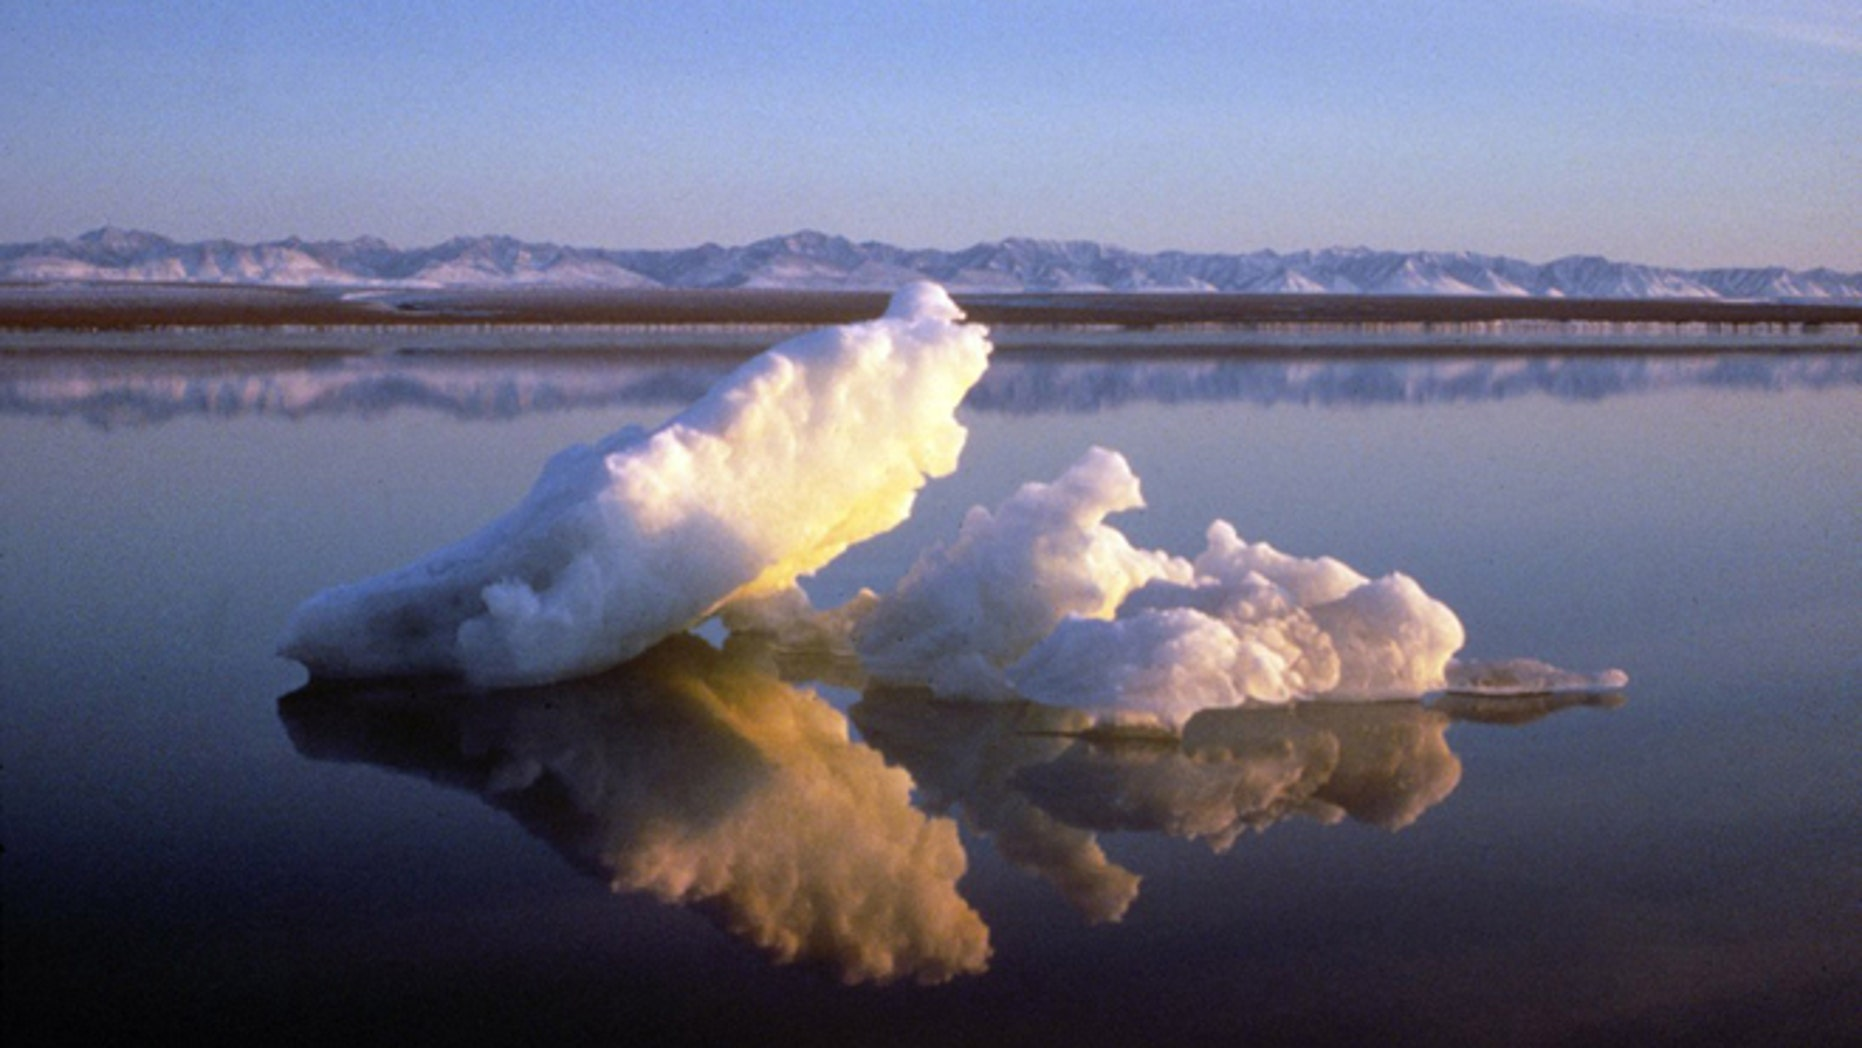 Sea ice floats within the 1002 Area of the Arctic National Wildlife Refuge in this undated handout photo provided by the U.S. Fish and Wildlife Service Alaska Image Library.